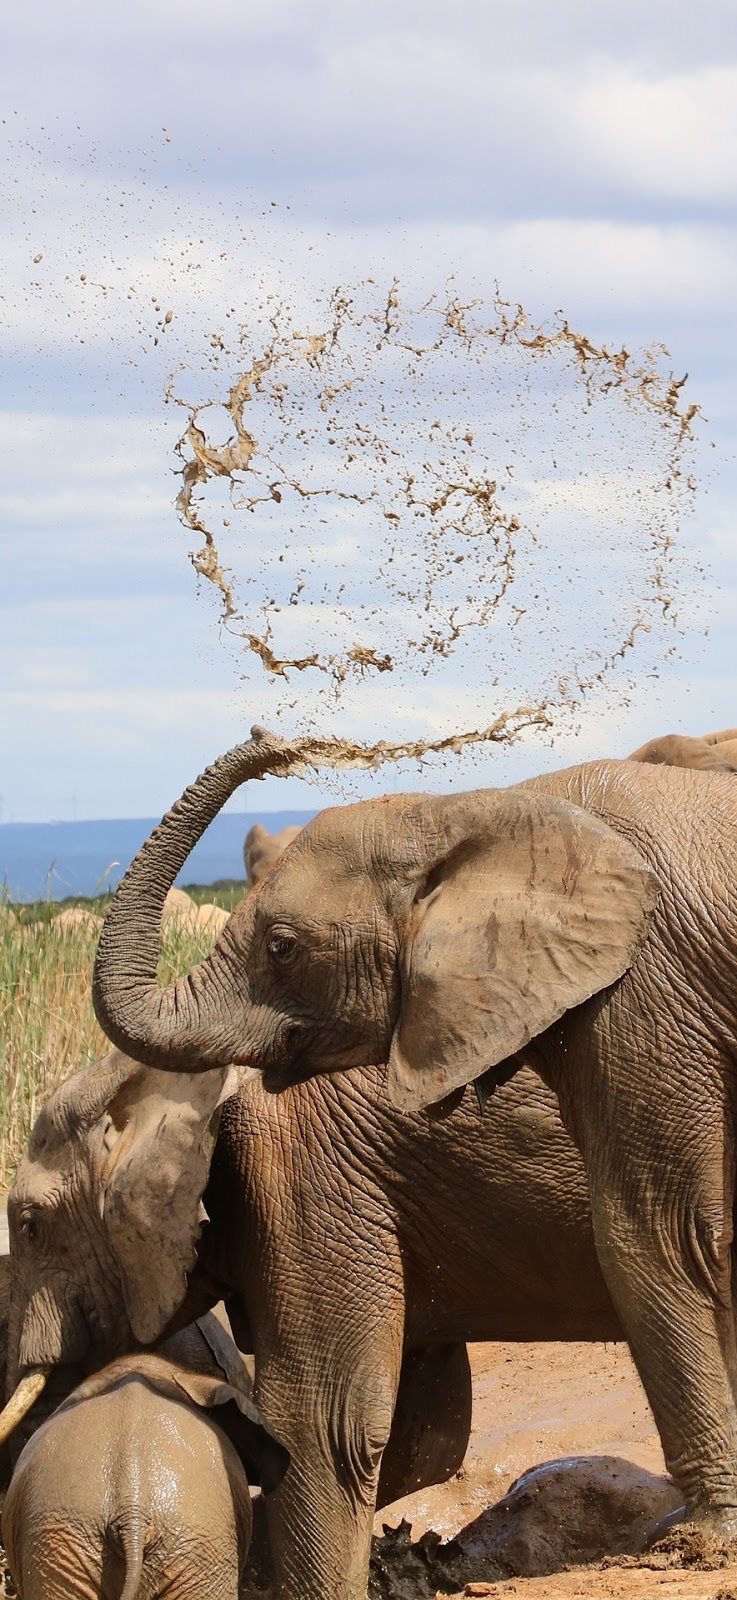 Picture of elephant water mud spray.